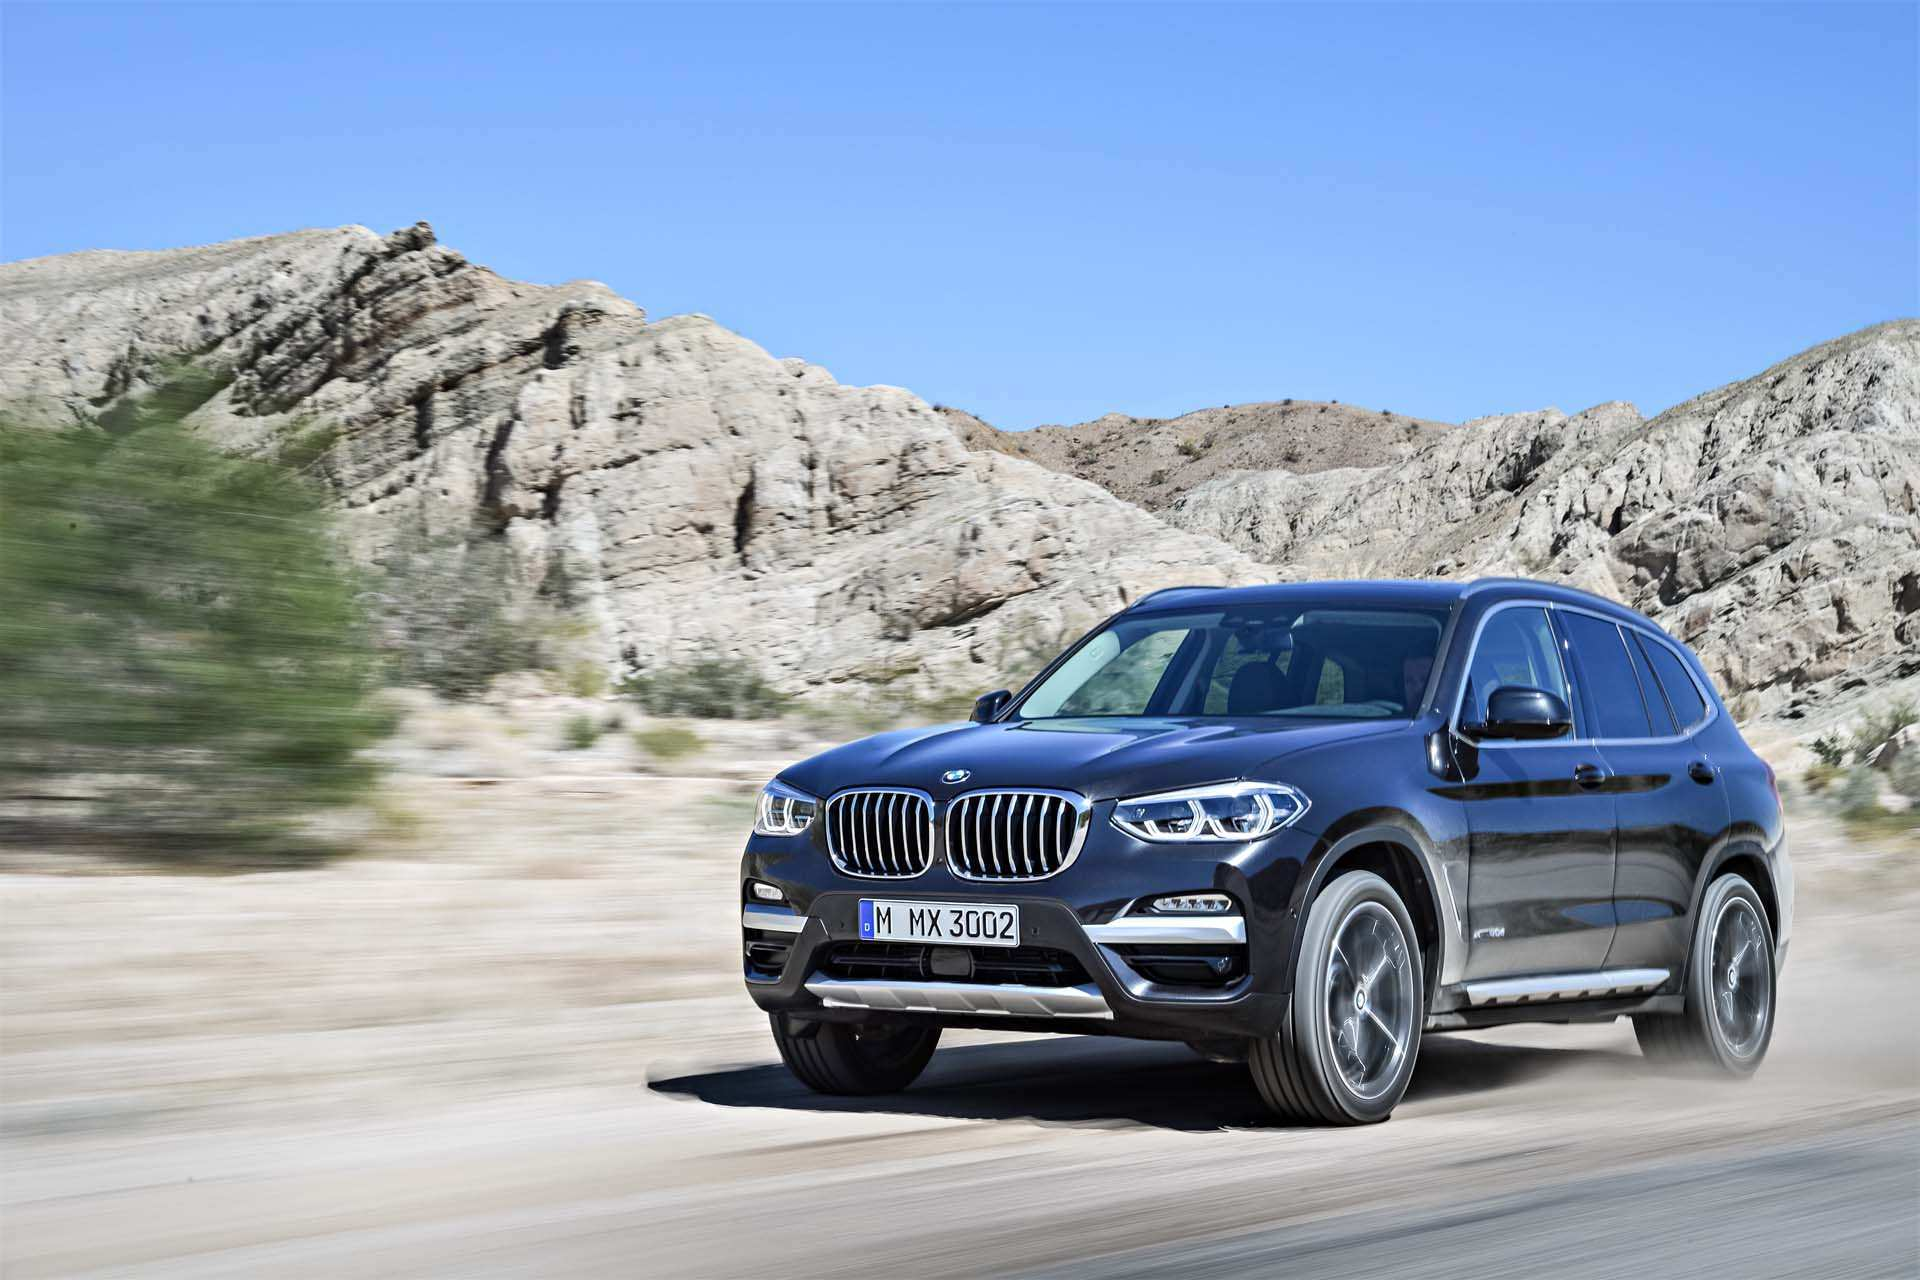 44 Best Review 2020 BMW X3 Review with 2020 BMW X3